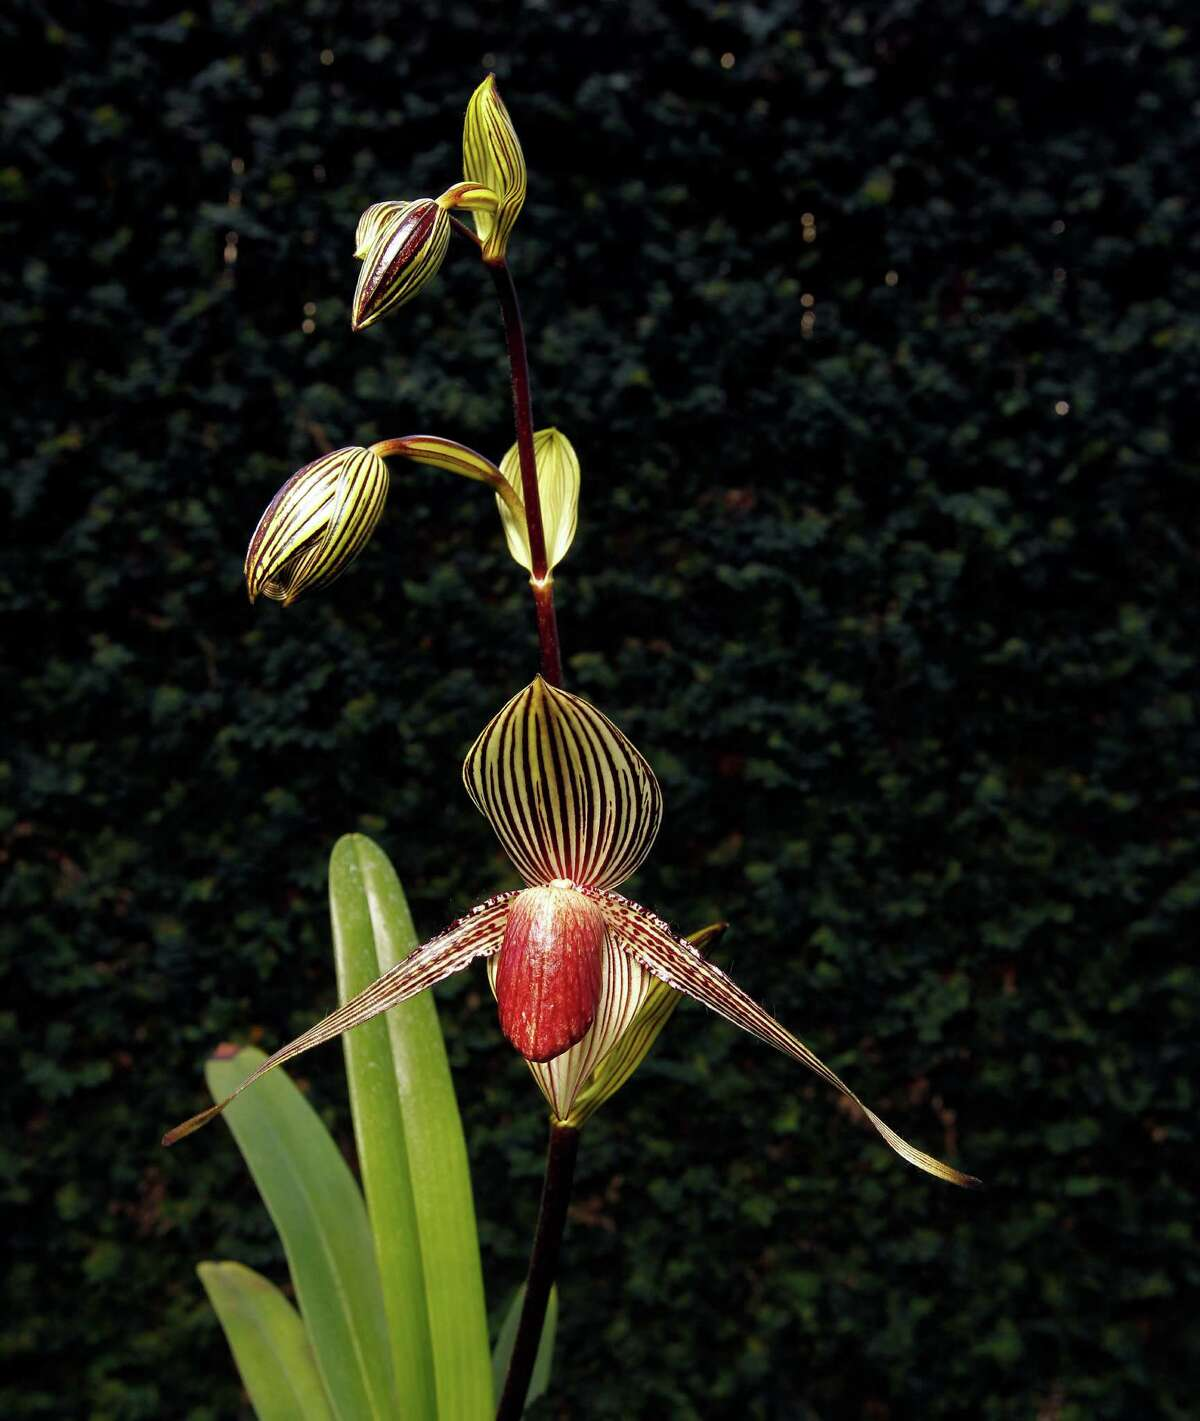 The lady's slipper orchids lure insects to their pouch for pollination purposes.